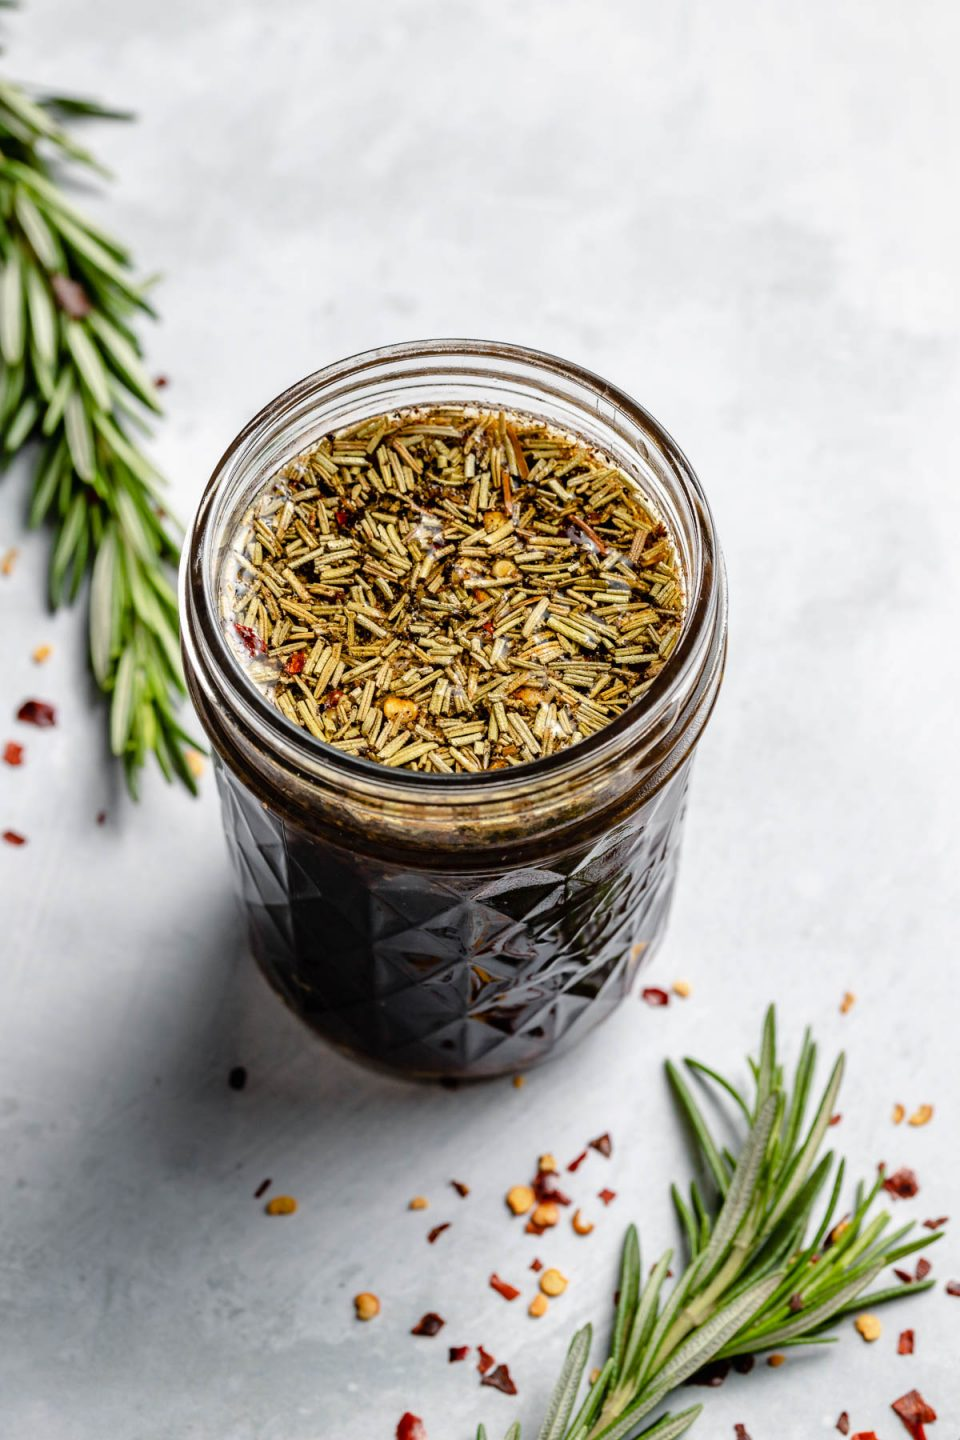 Brown Sugar Bourbon marinade shown in a small ball jar, sitting atop a light blue surface with a fresh sprig of rosemary & crushed red chili pepper flakes on the surface in the foreground & in the background.